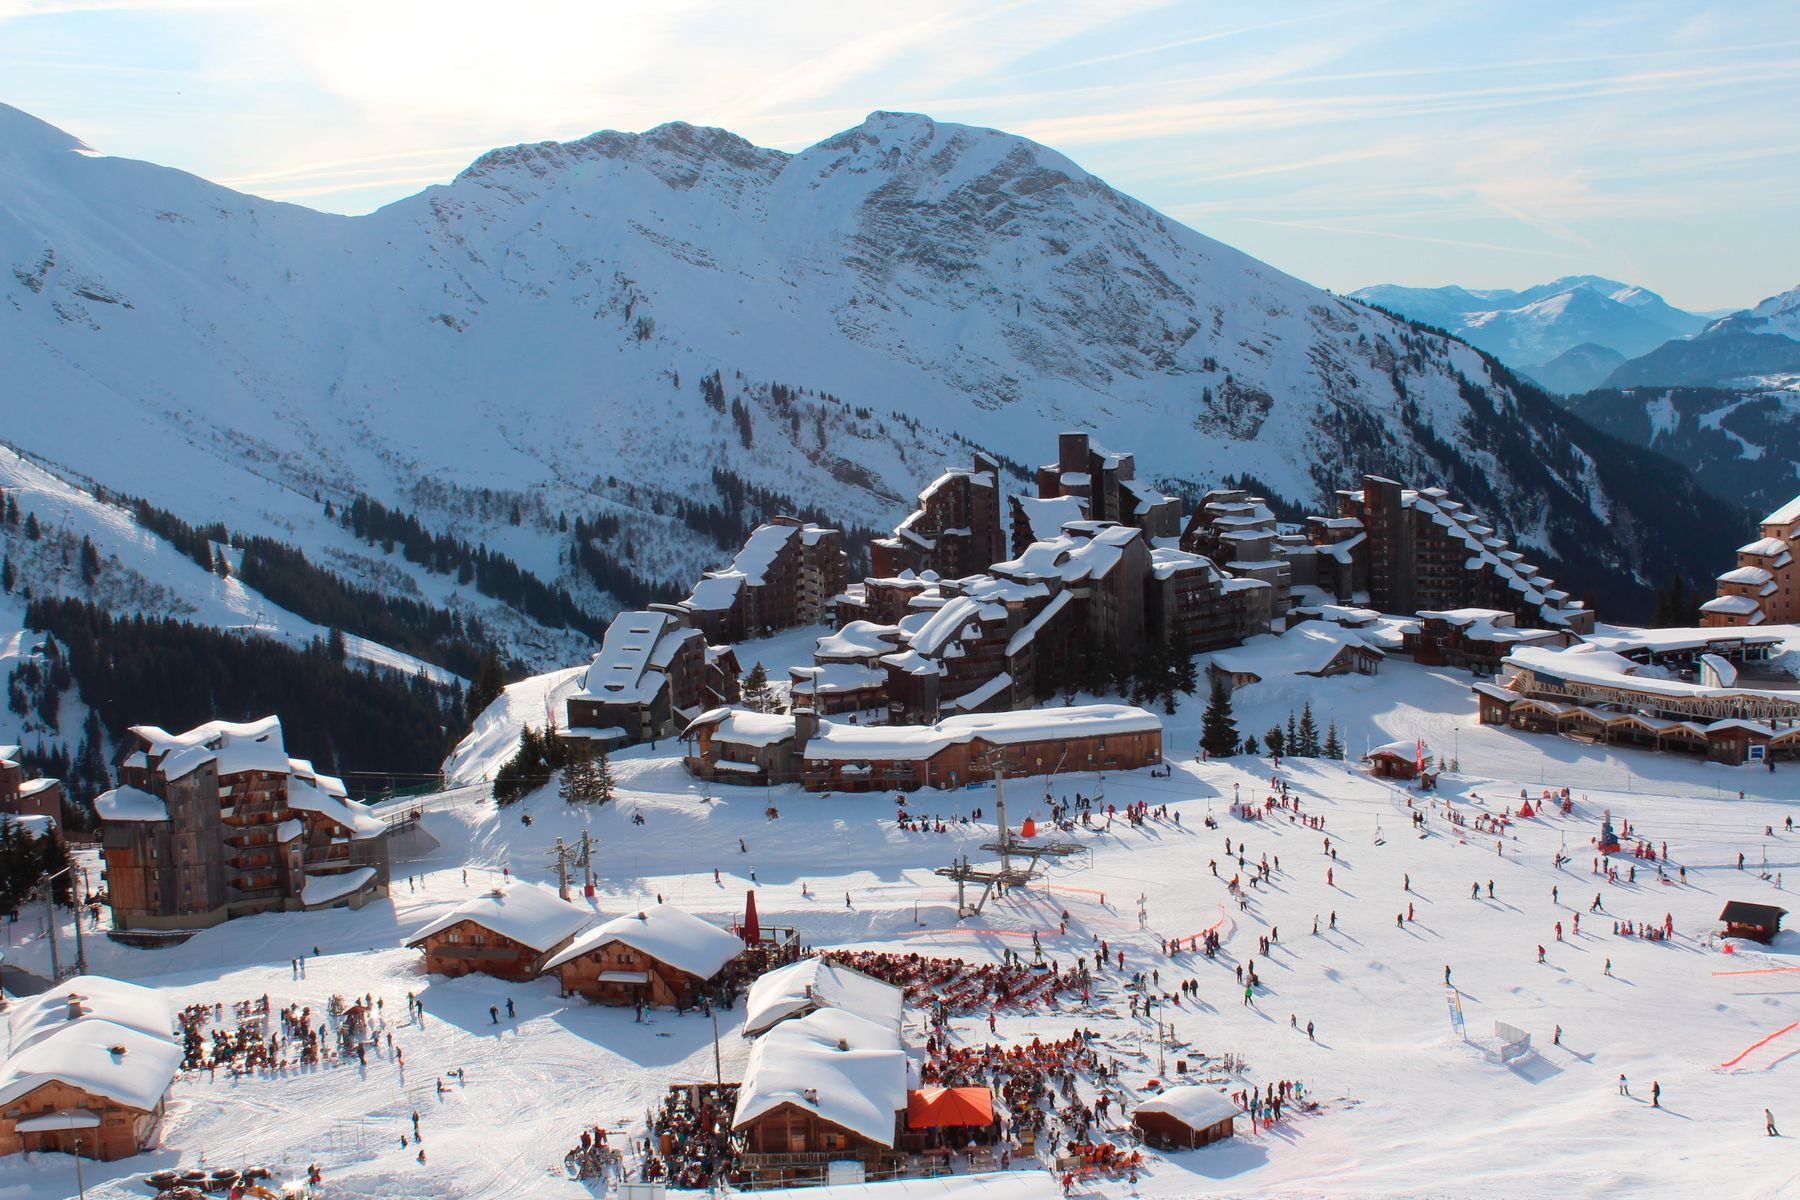 View of a busy but small ski resort from above, with a mountain in the background